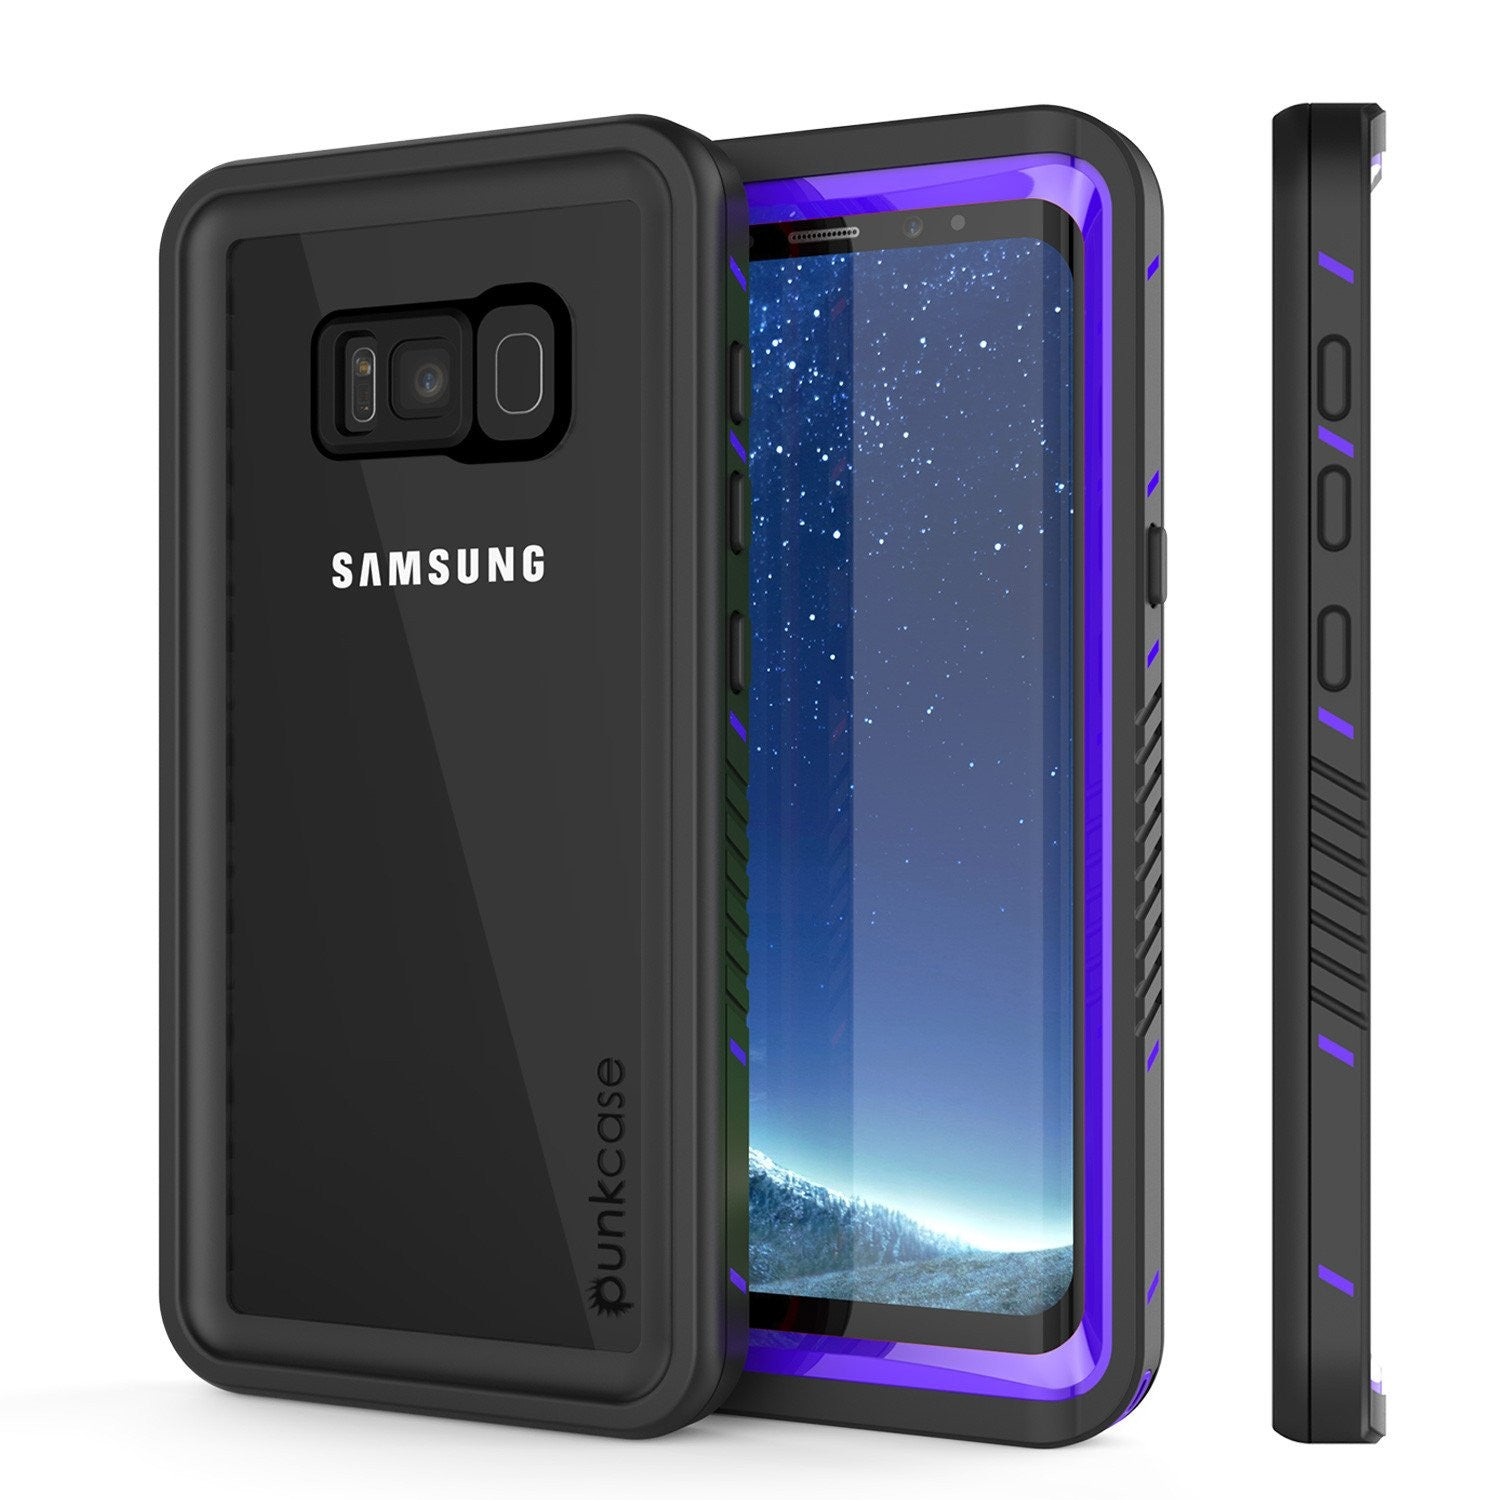 Galaxy S8 PLUS Waterproof Case, Punkcase [Extreme Series] [Slim Fit] [IP68 Certified] [Shockproof] [Snowproof] [Dirproof] Armor Cover W/ Built In Screen Protector for Samsung Galaxy S8+ [Purple]